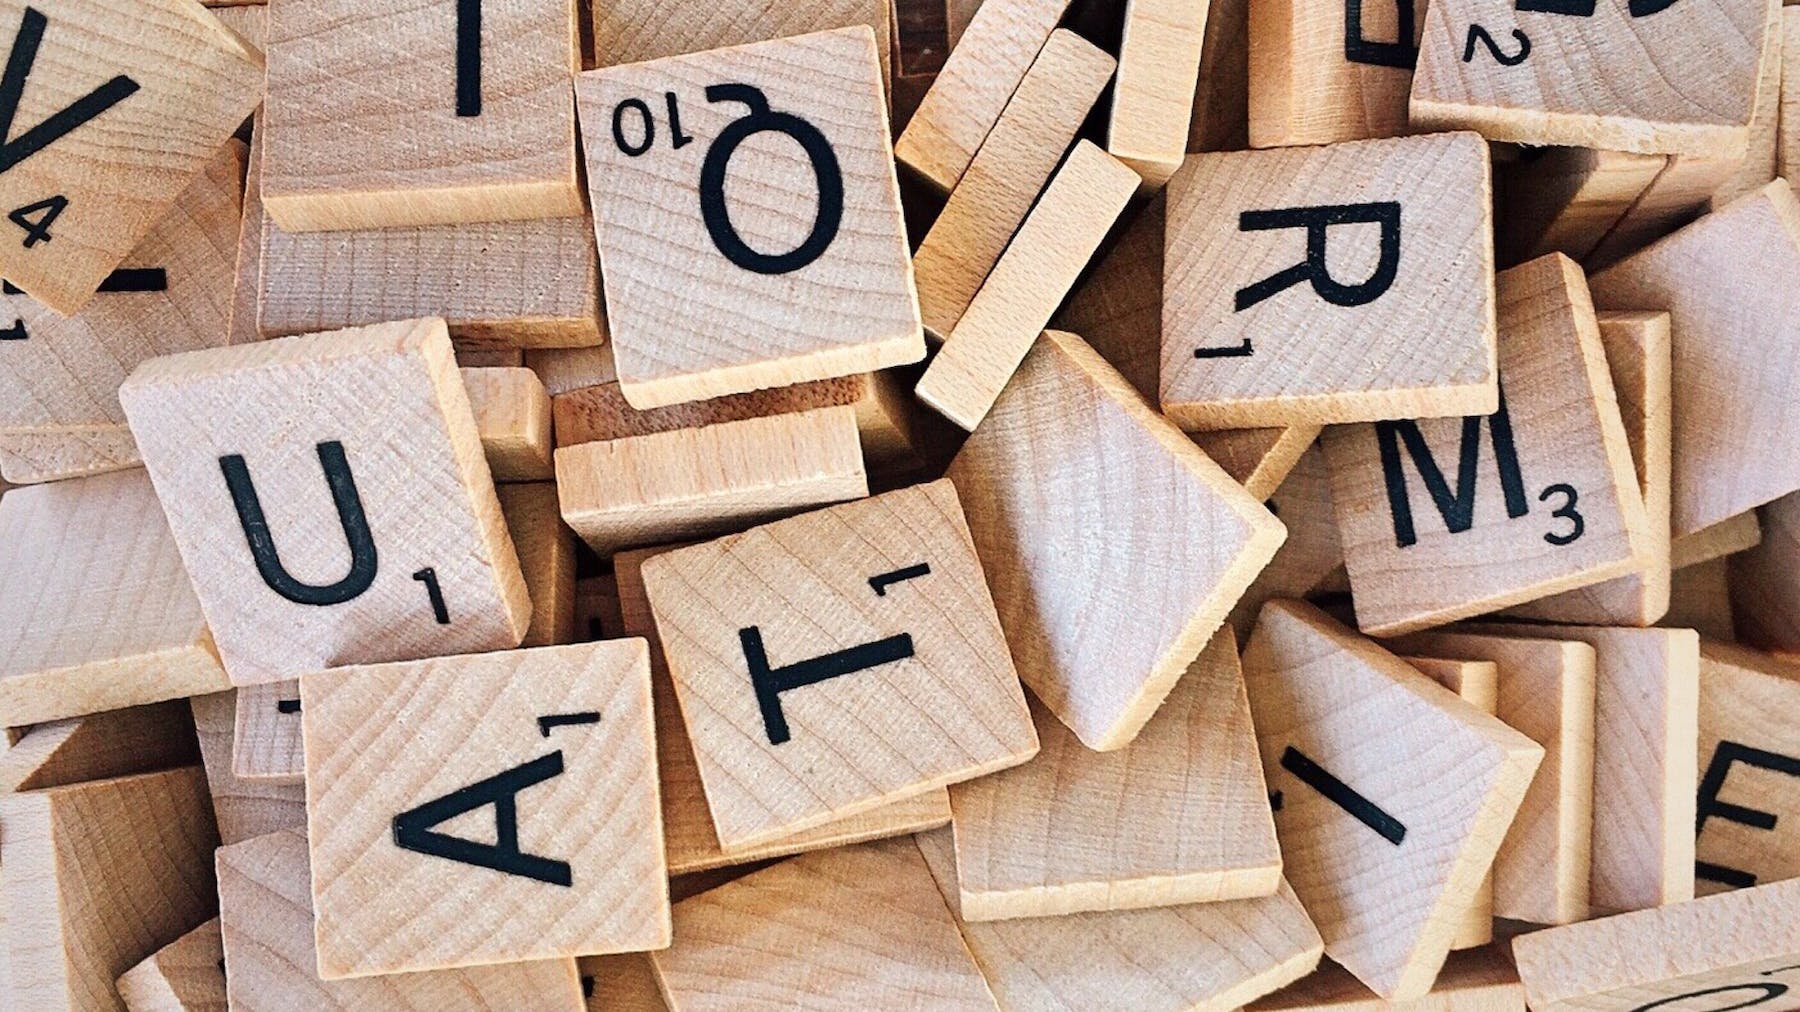 scrabble wooden letters scattered